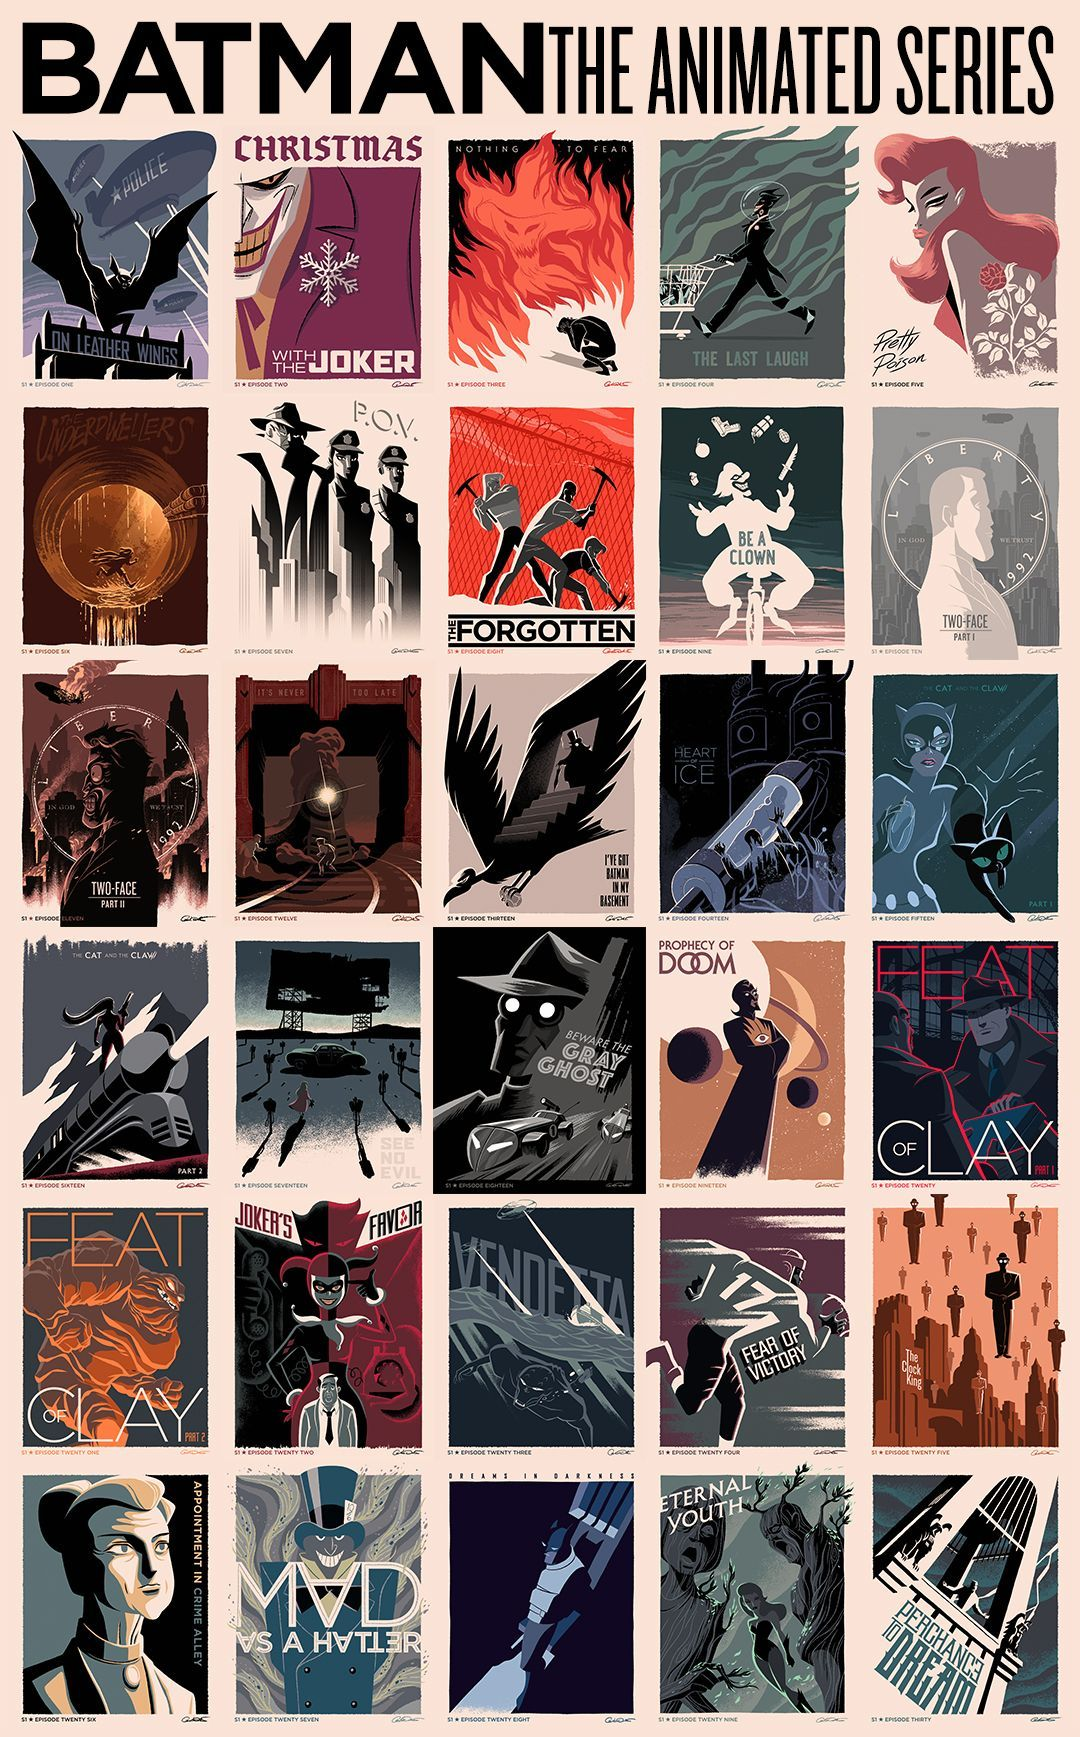 Batman The Animated Series Title Card Posters By George Caltsoudas